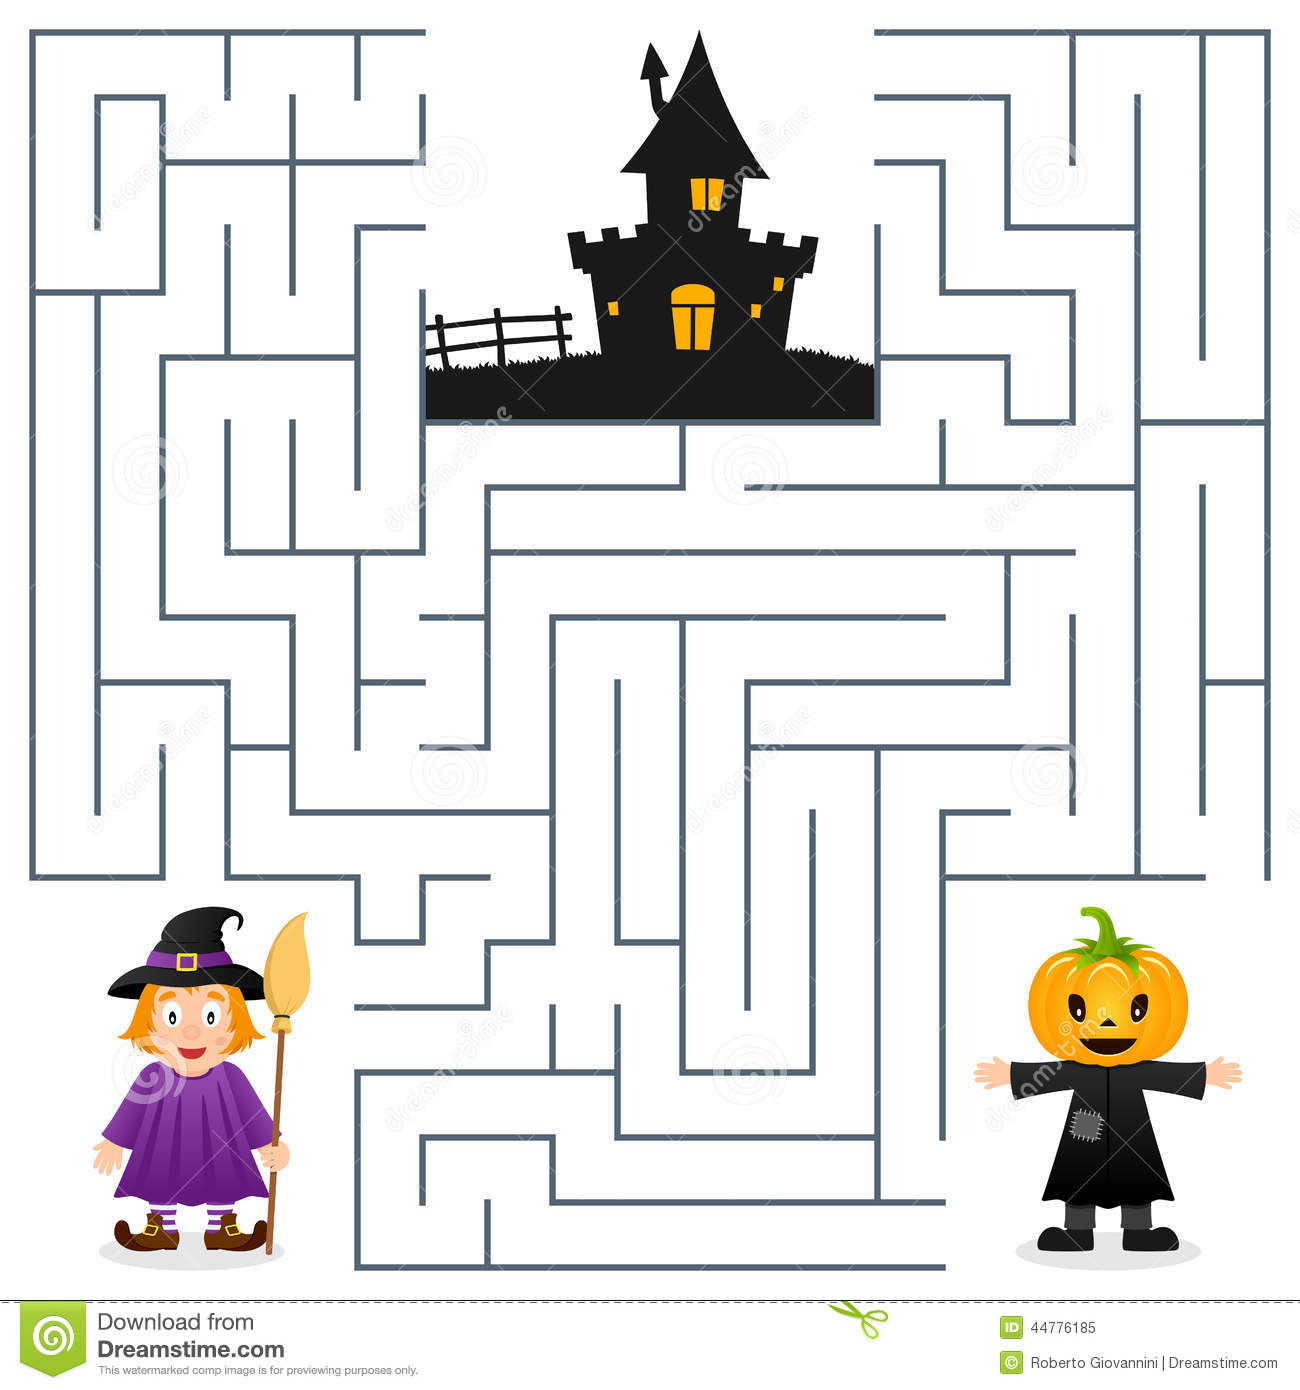 It's just an image of Priceless Halloween Maze Printable